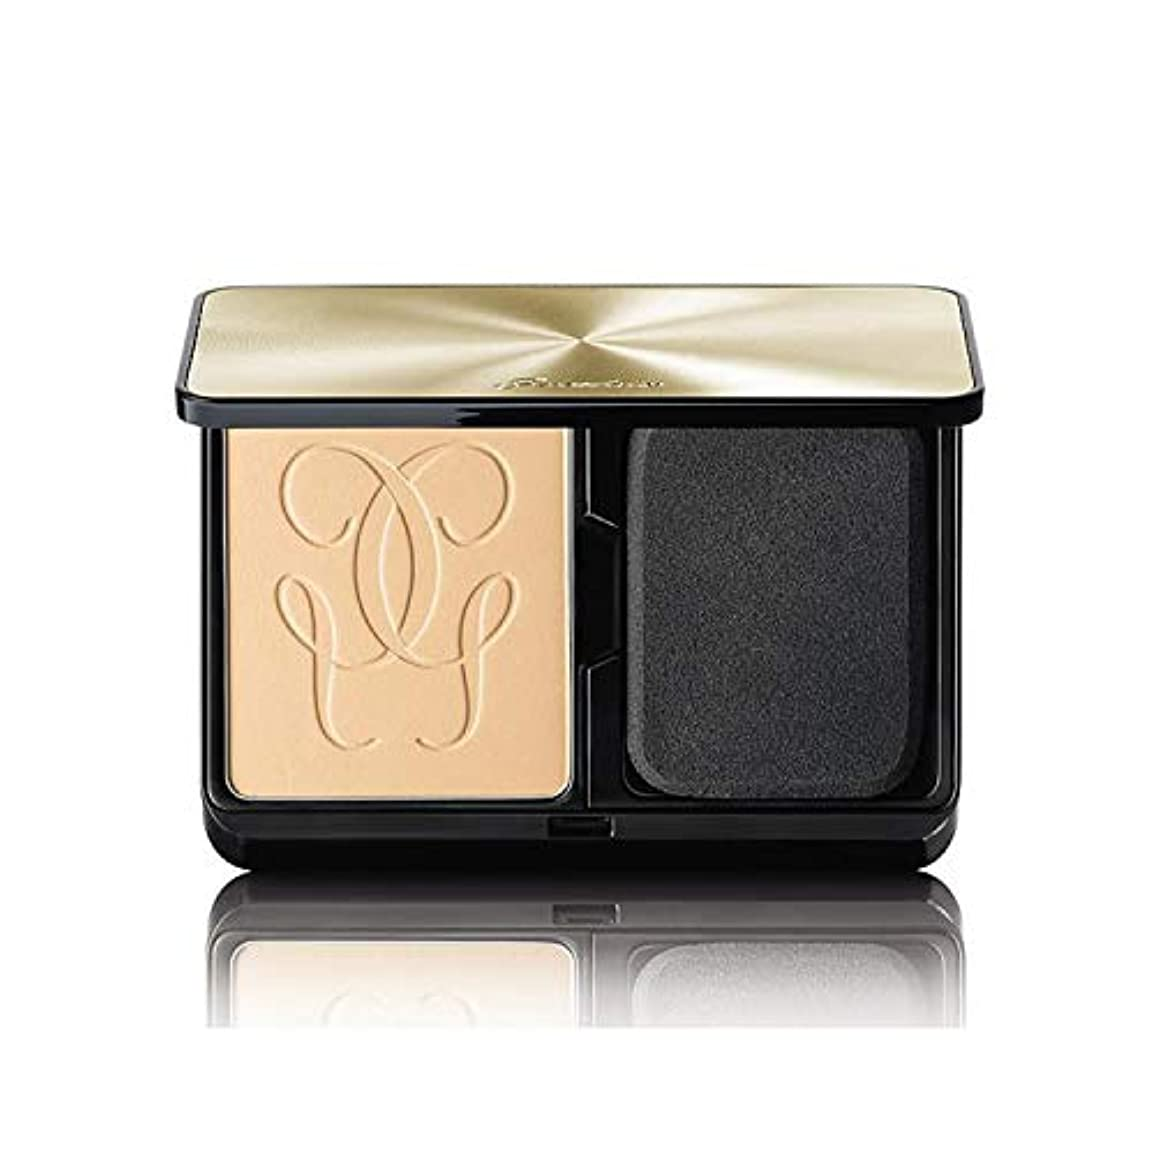 ペンフレンド反逆者ほのめかすゲラン Lingerie De Peau Mat Alive Buildable Compact Powder Foundation SPF 15 - # 01N Very Light 8.5g/0.29oz並行輸入品